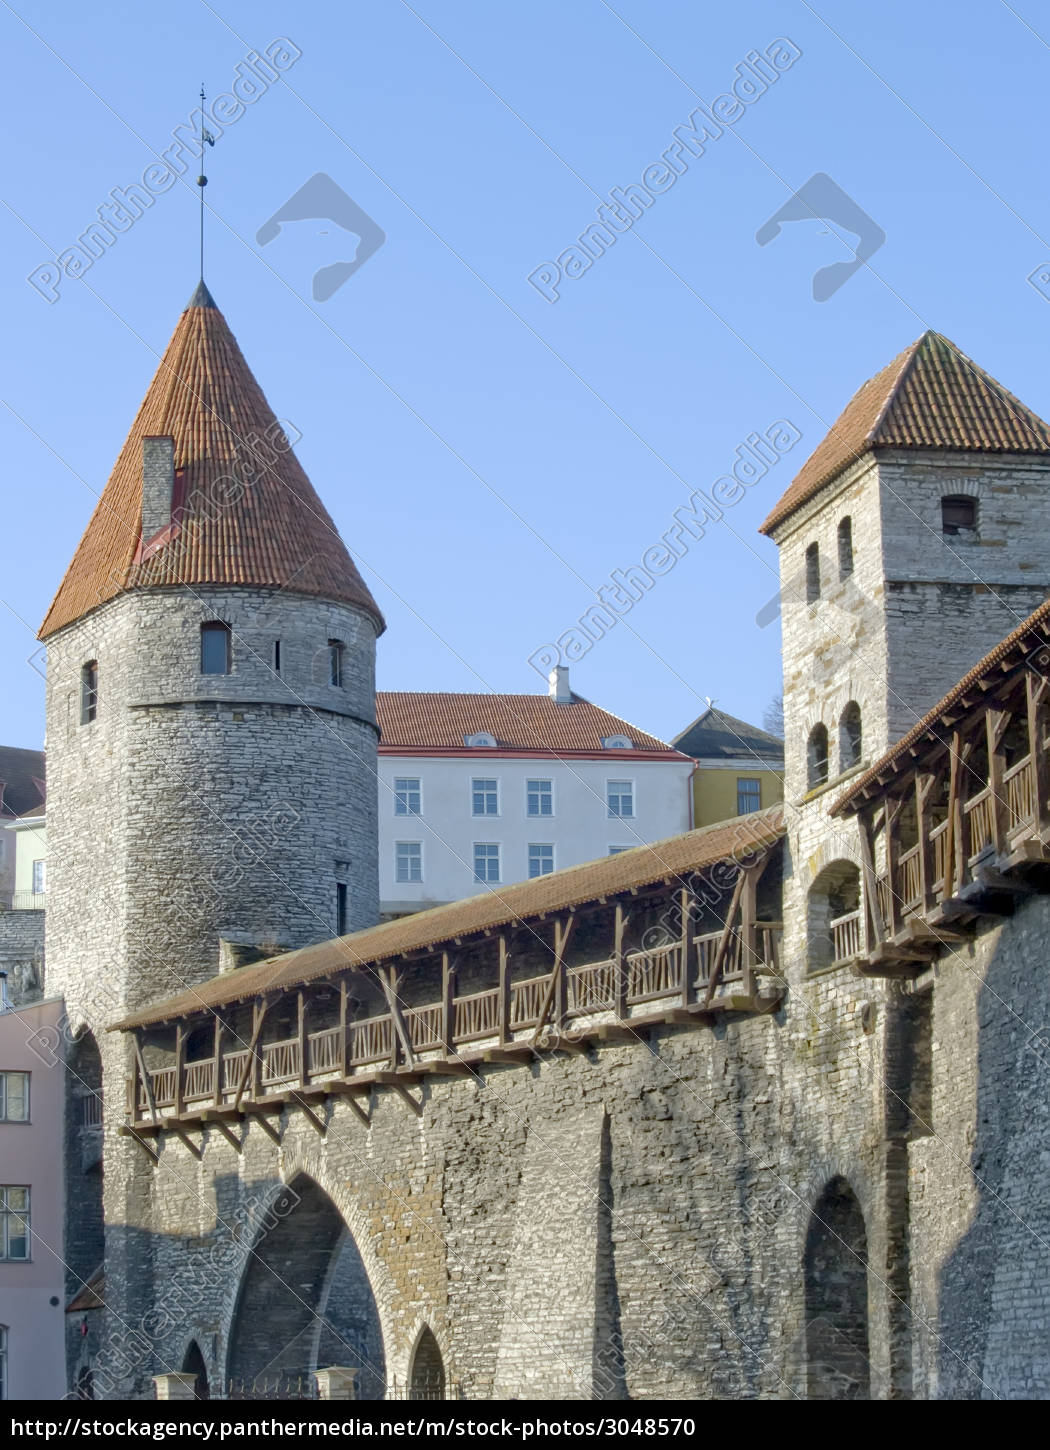 medieval, fortification, , and, towers - 3048570